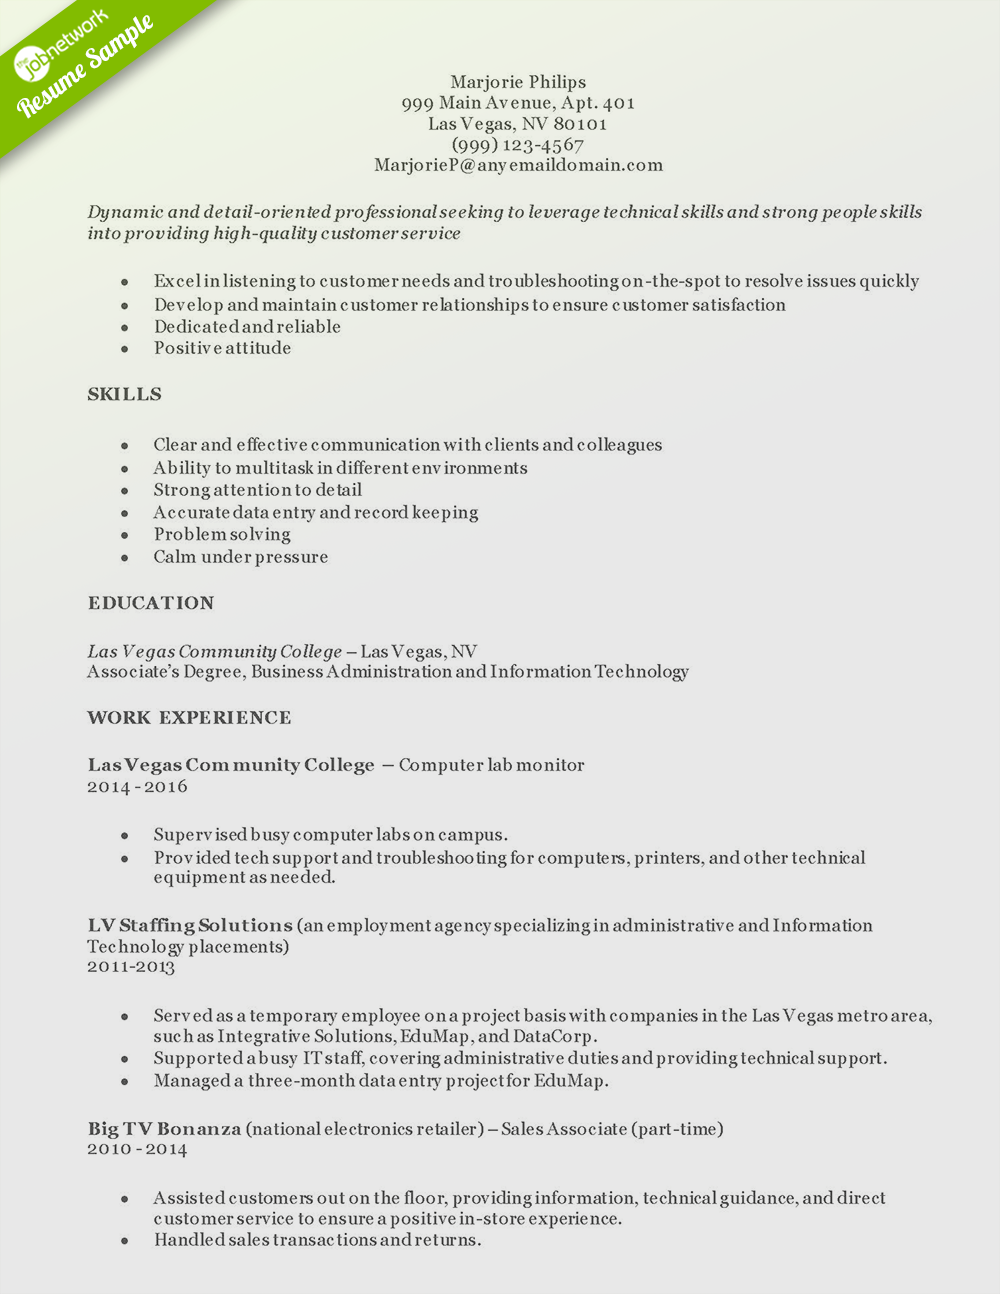 Customer Service Resume  Customer Service Resume